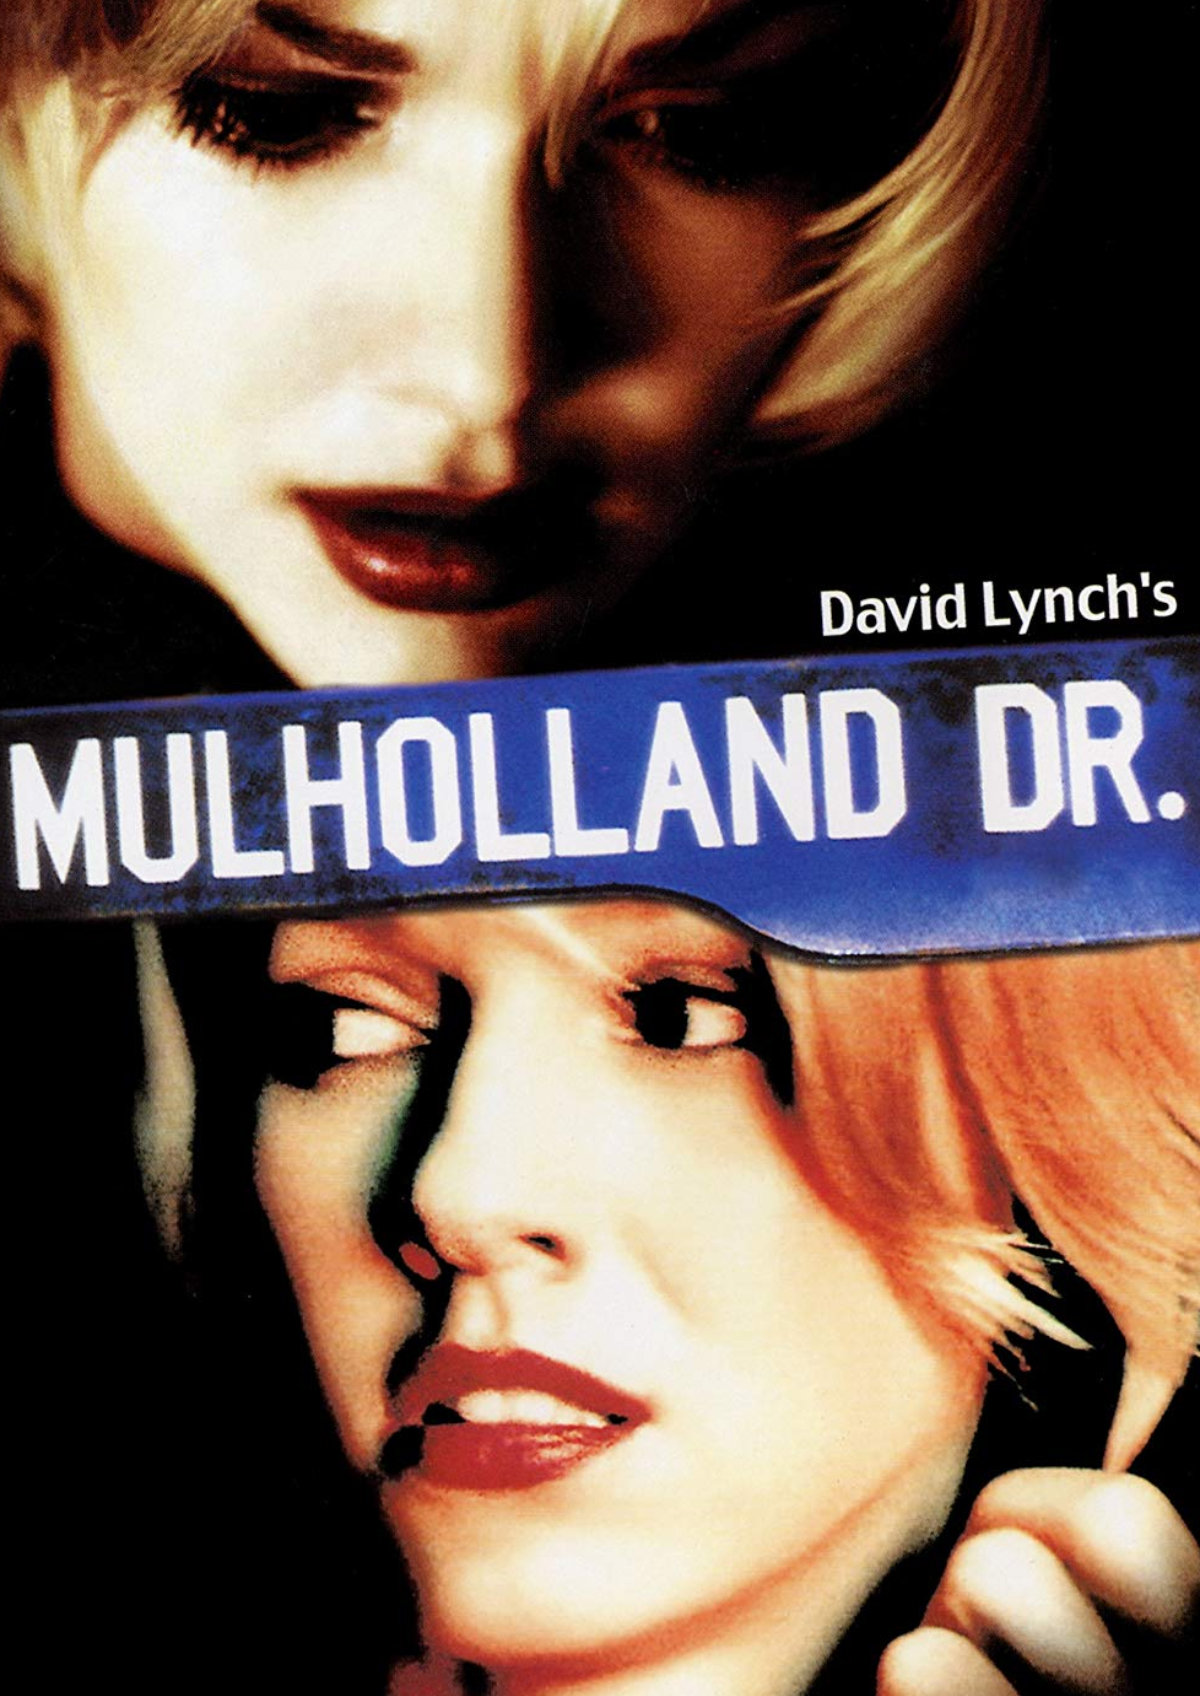 'Mulholland Drive' movie poster